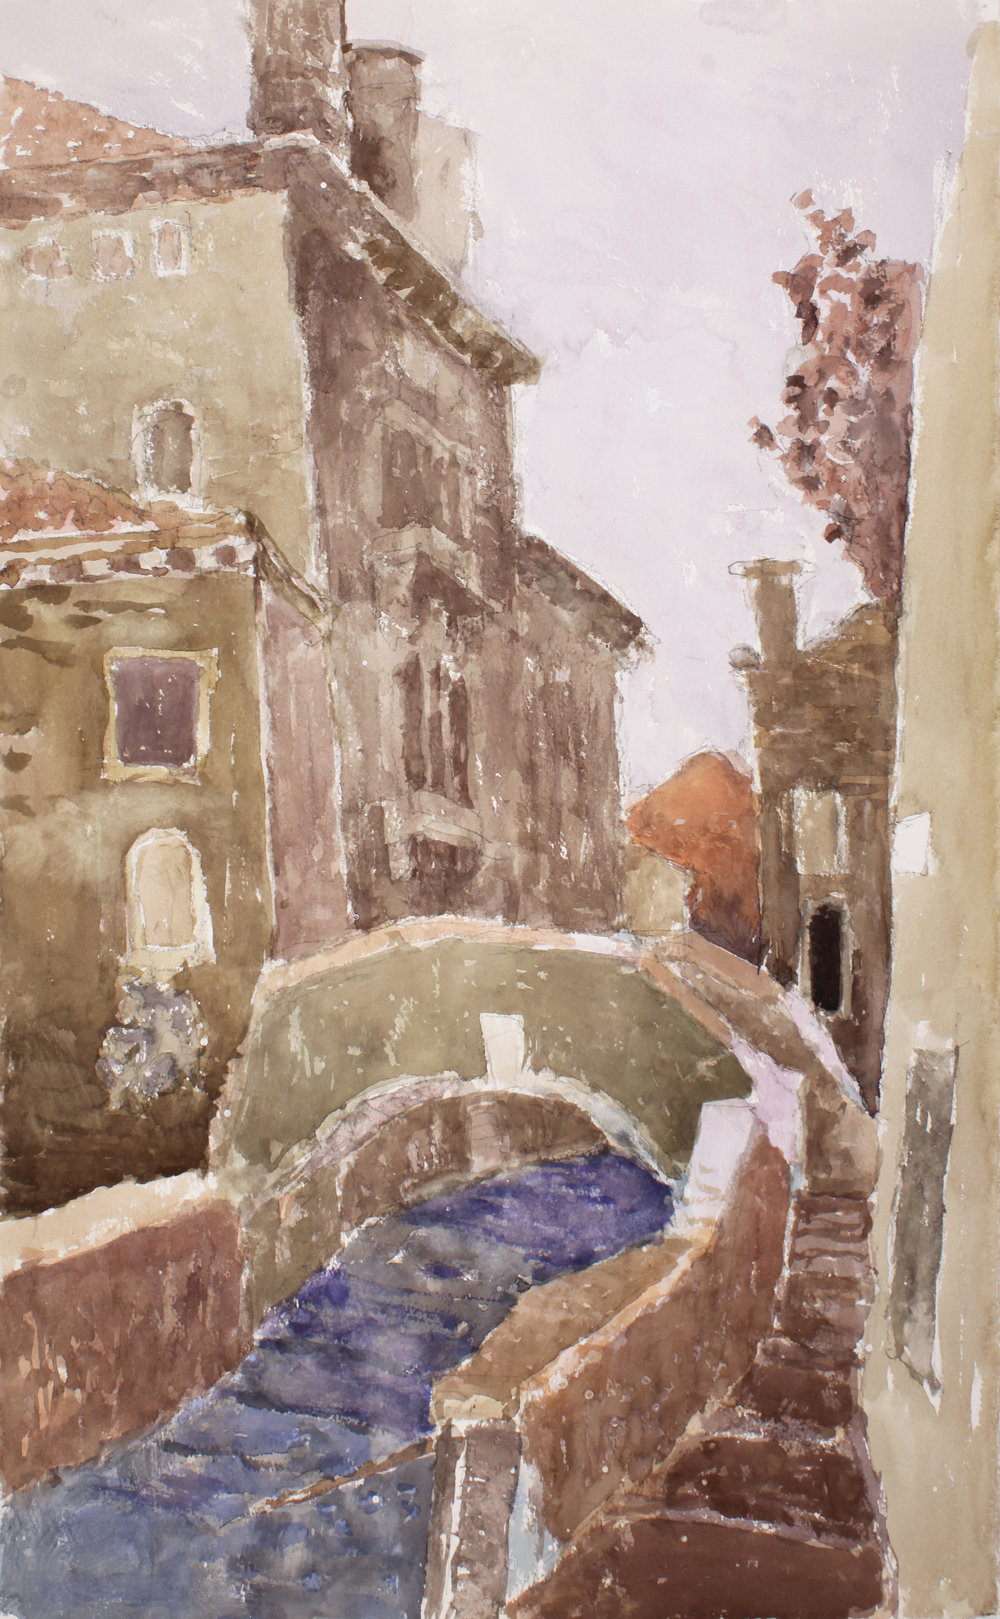 1998_Rio_San_Cassiano_watercolour_and_pencil_on_paper_28x17in_WPF307.jpg